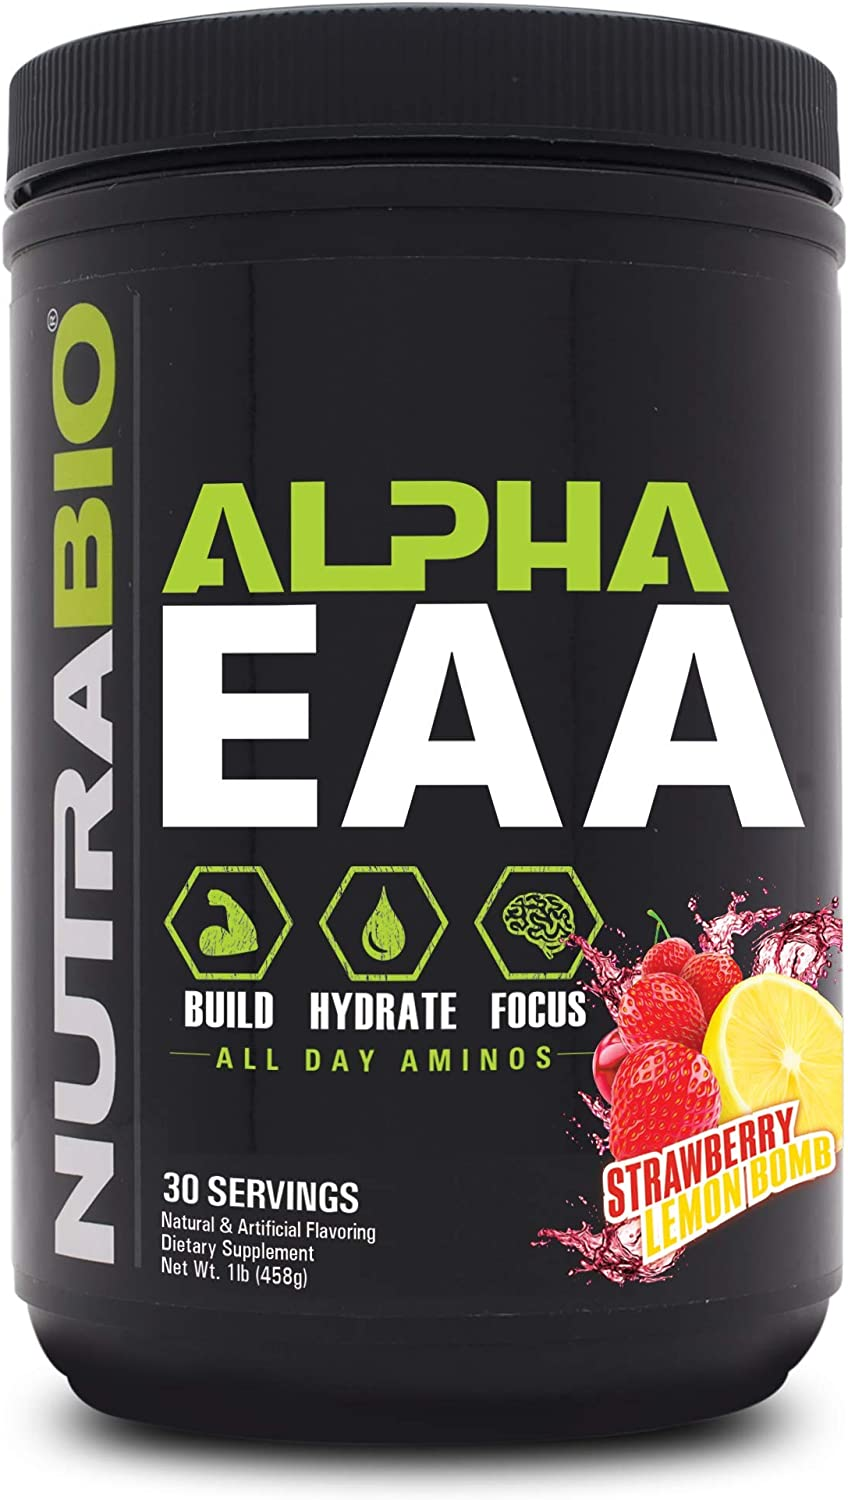 NutraBio Alpha EAA (Strawberry Lemon Bomb) – All-Day Recovery, Focus, and Hydration Supplement